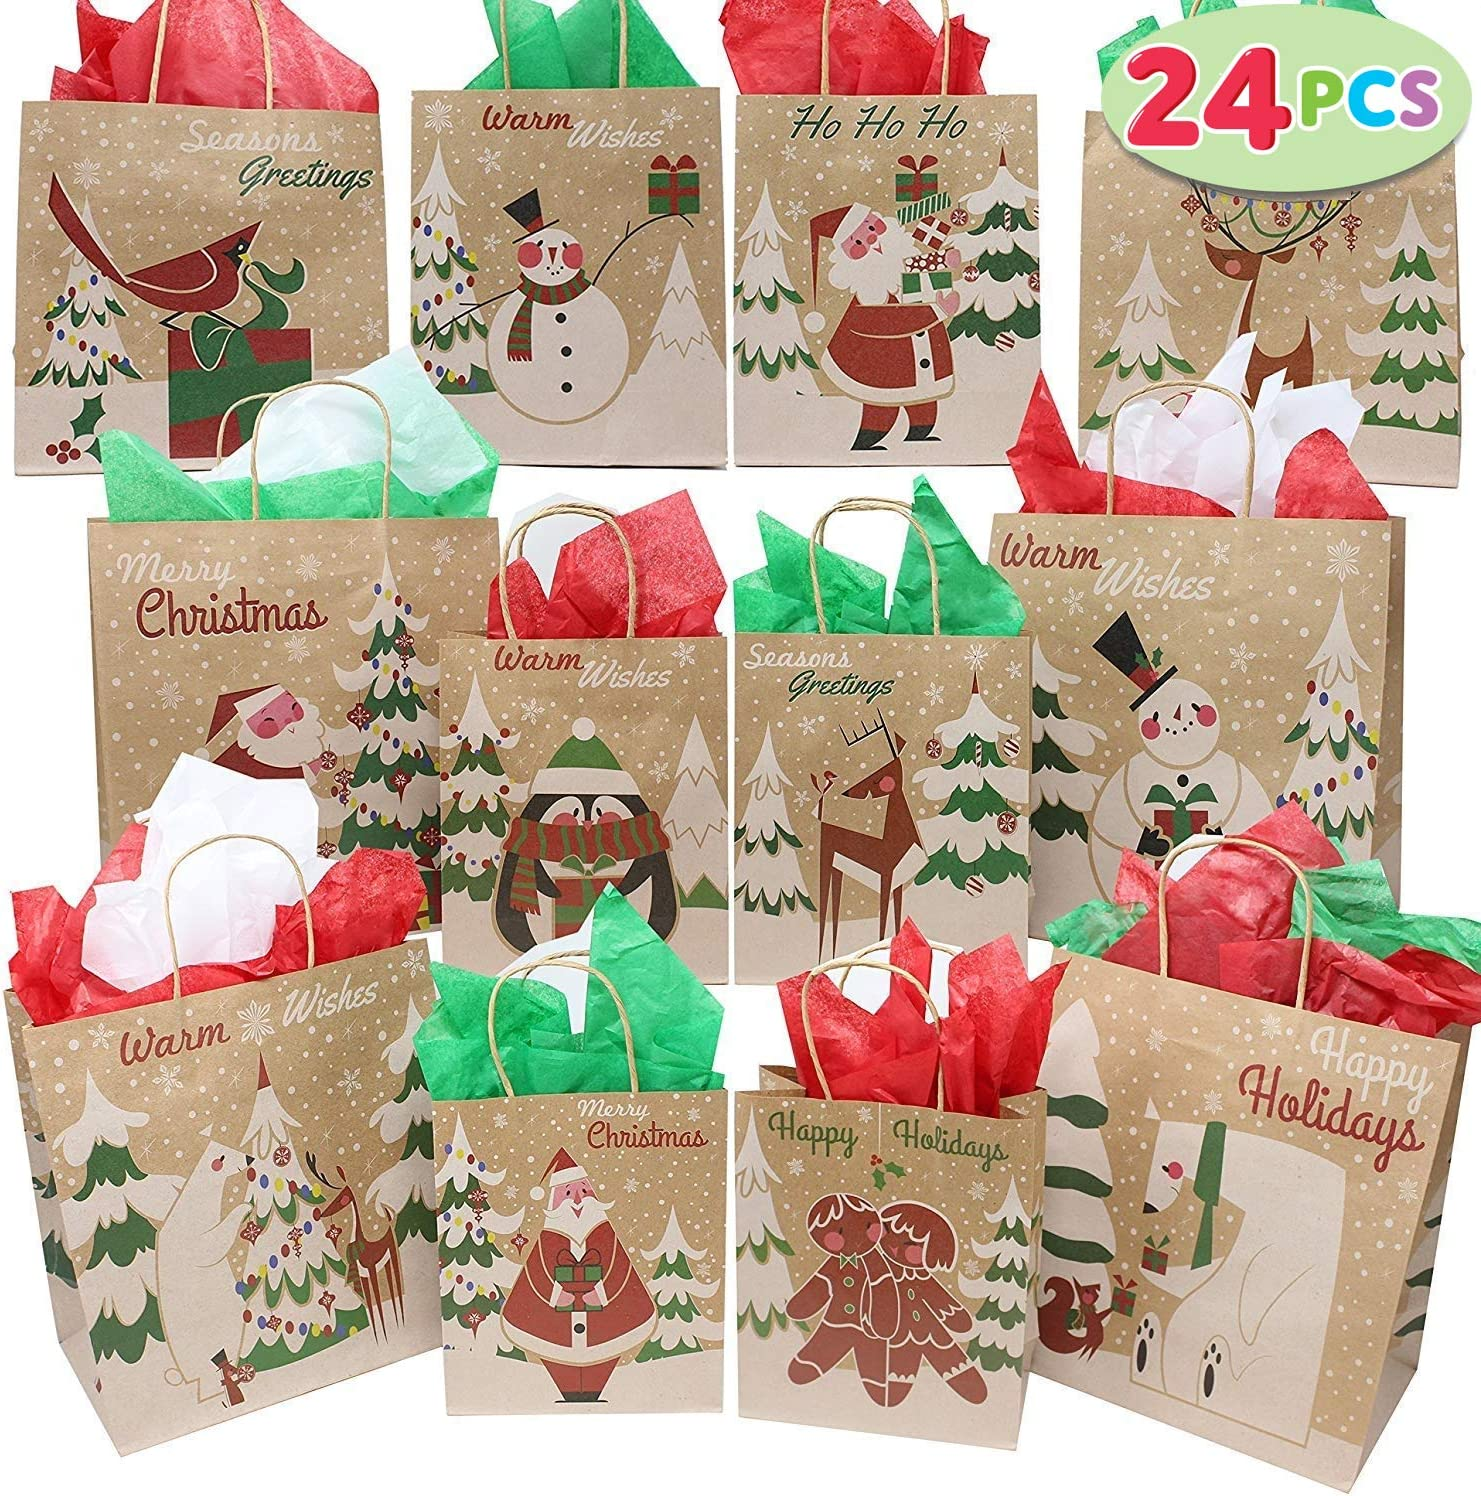 24pcs Christmas Kraft Goody Gift Paper Bags Small Holiday Gift Wrapping Bags with Assorted Christmas Prints for Xmas Party Favors Small Gifts Present Party Supplies Classrooms Decorations Gift-Giving